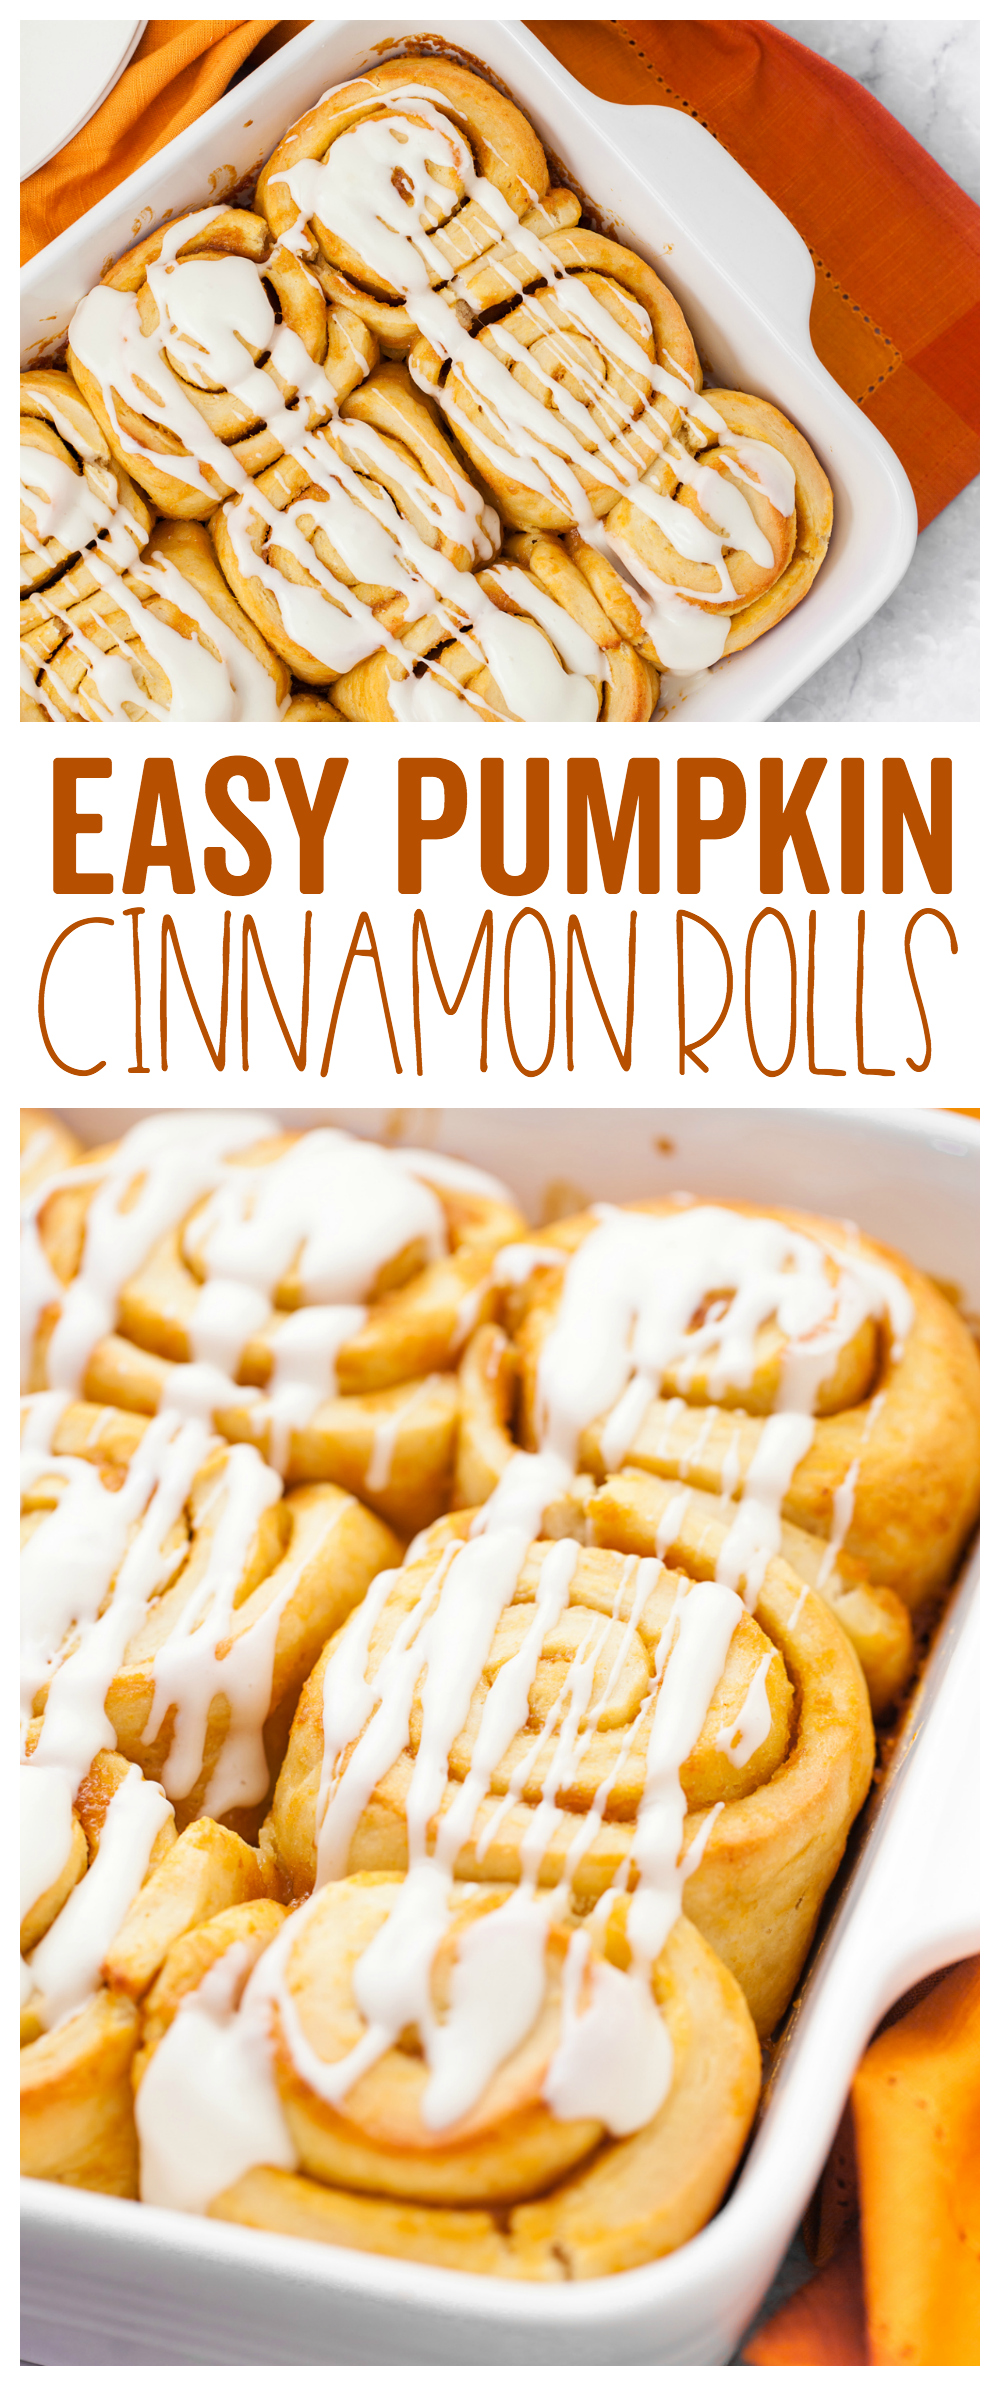 This easy pumpkin cinnamon roll recipe is great for the fall season.  Pumpkin, cinnamon, and 60 minutes later you have a delicious treat!